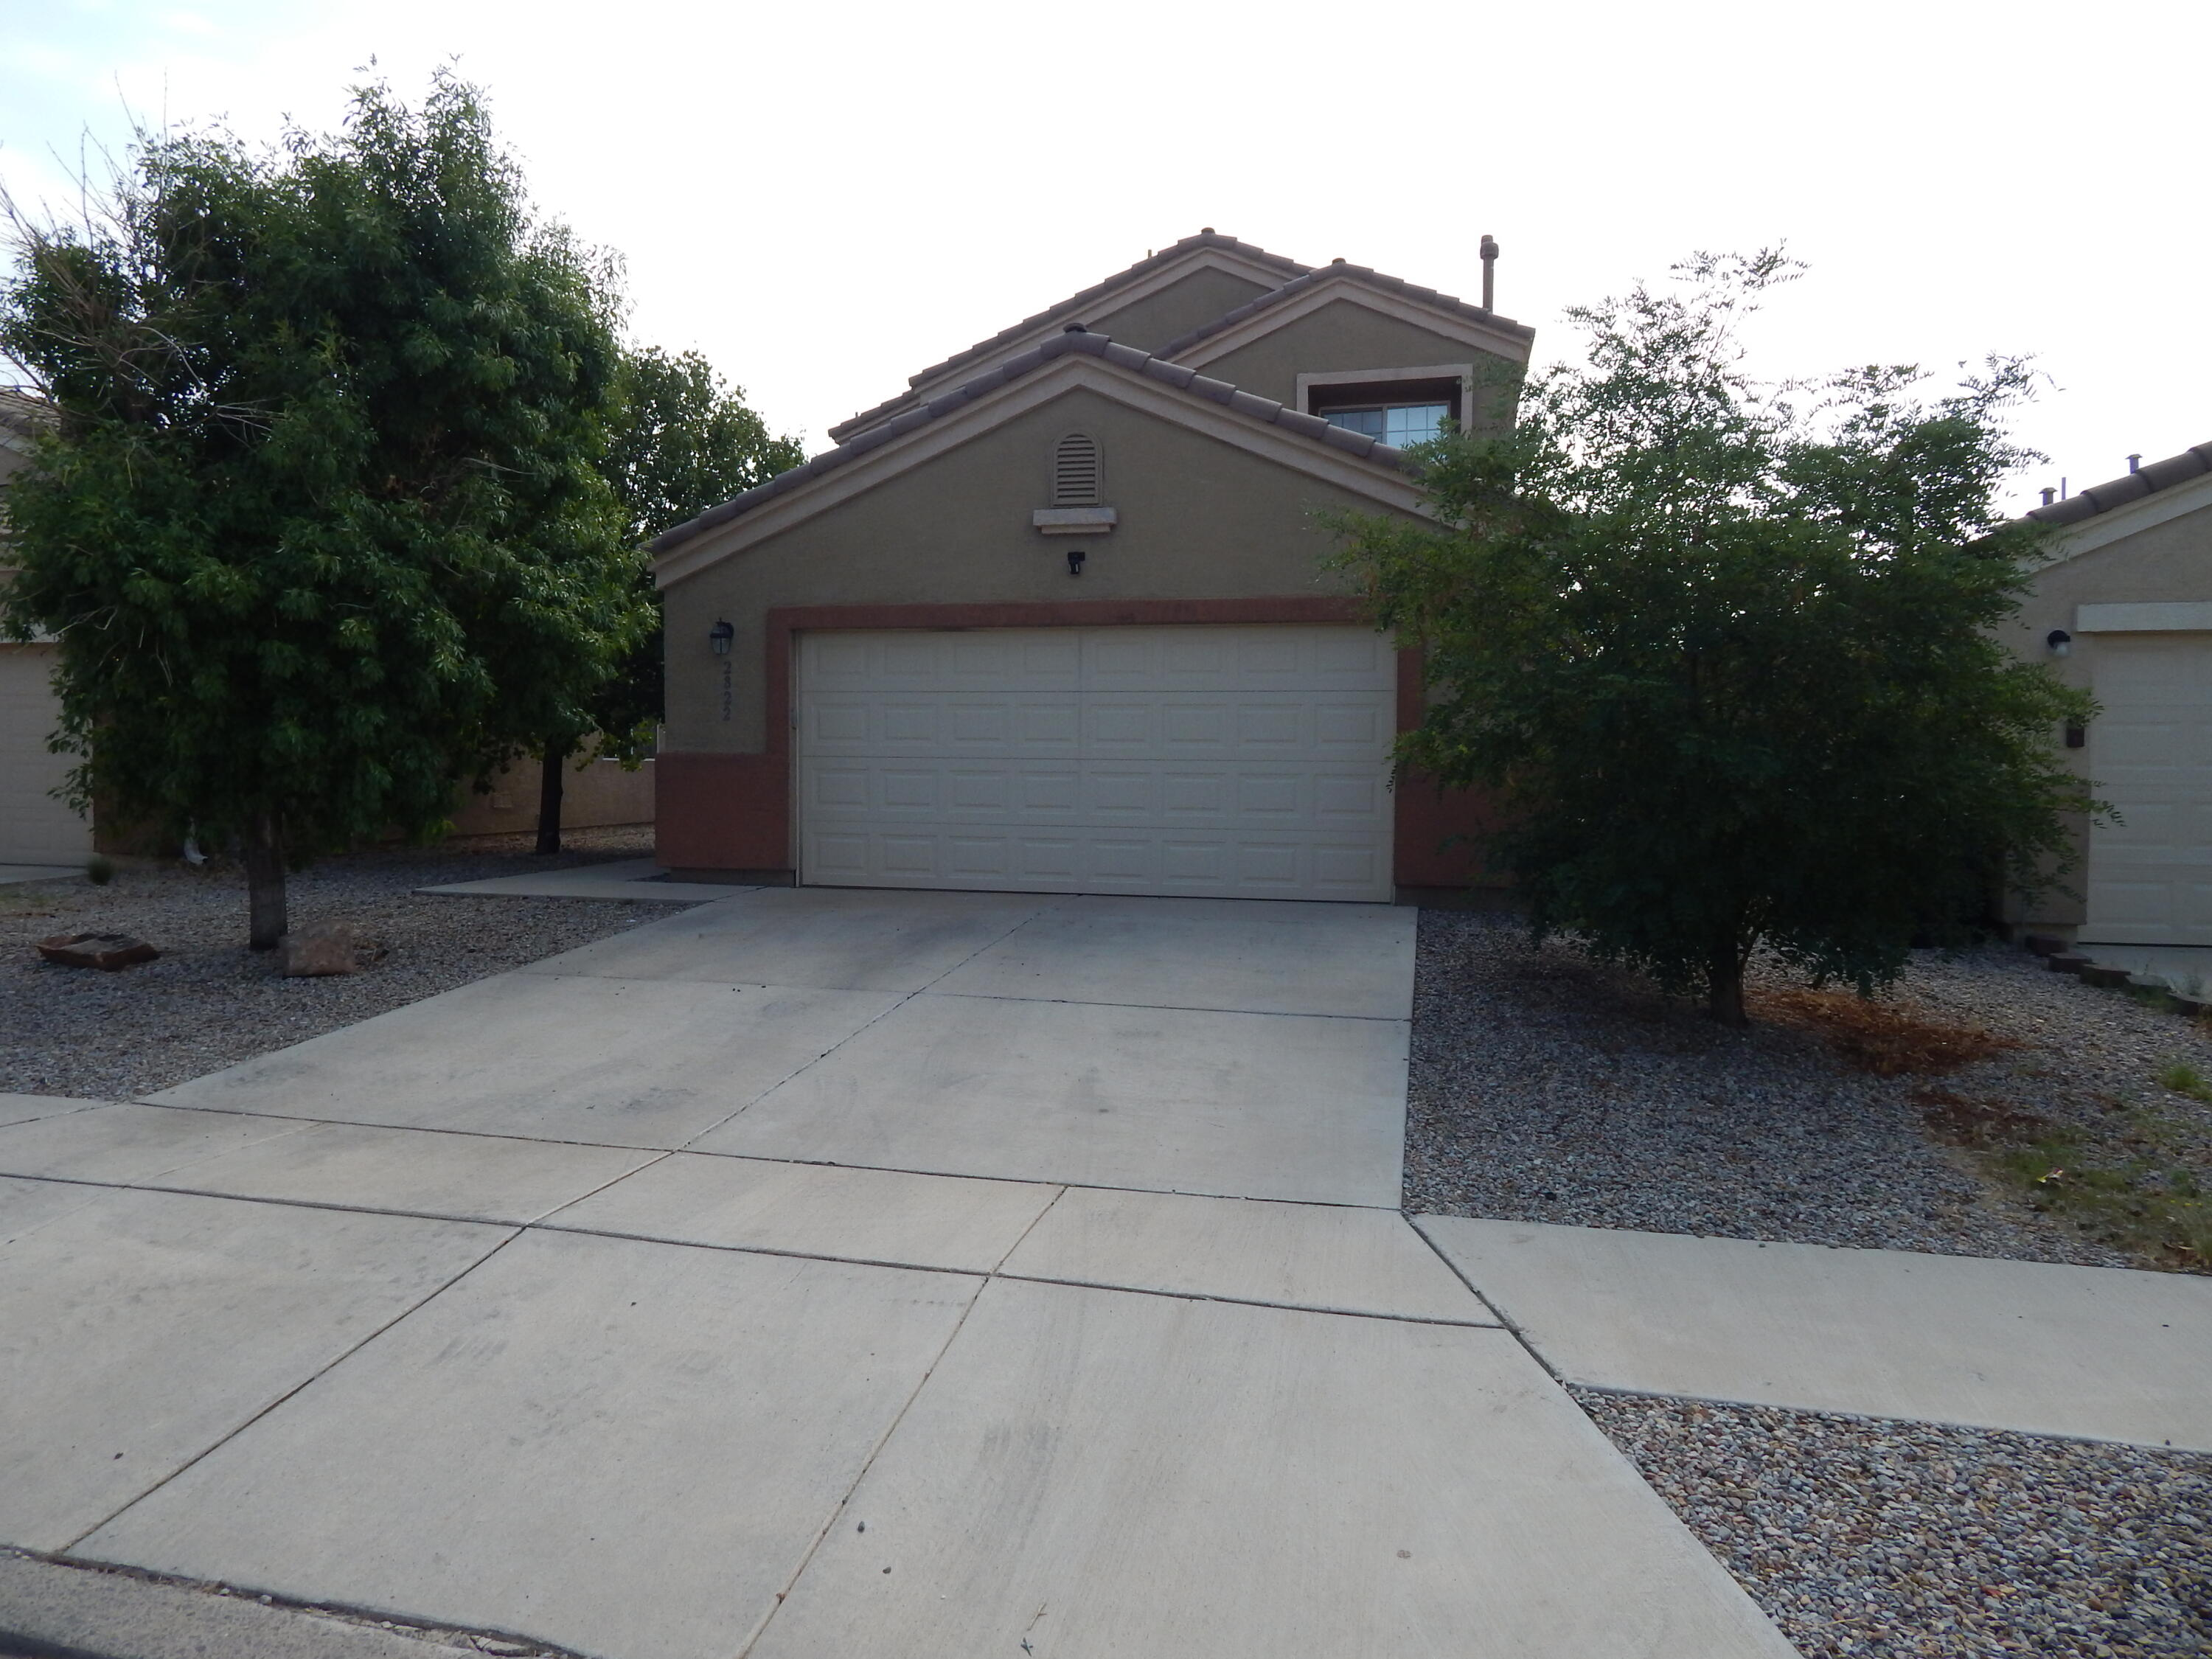 Beautiful Home with Large Kitchen and Spacious Living Room. Bedrooms on both levels. Well placed Shade Trees and Back Yard that faces East affords an opportunity to enjoy Cool Evenings Outside. Tastefull Master Suite Layout with Separate Shower in Master Bath. Refrigerated Air and Large Laundry Room, this Home has Everything you want!